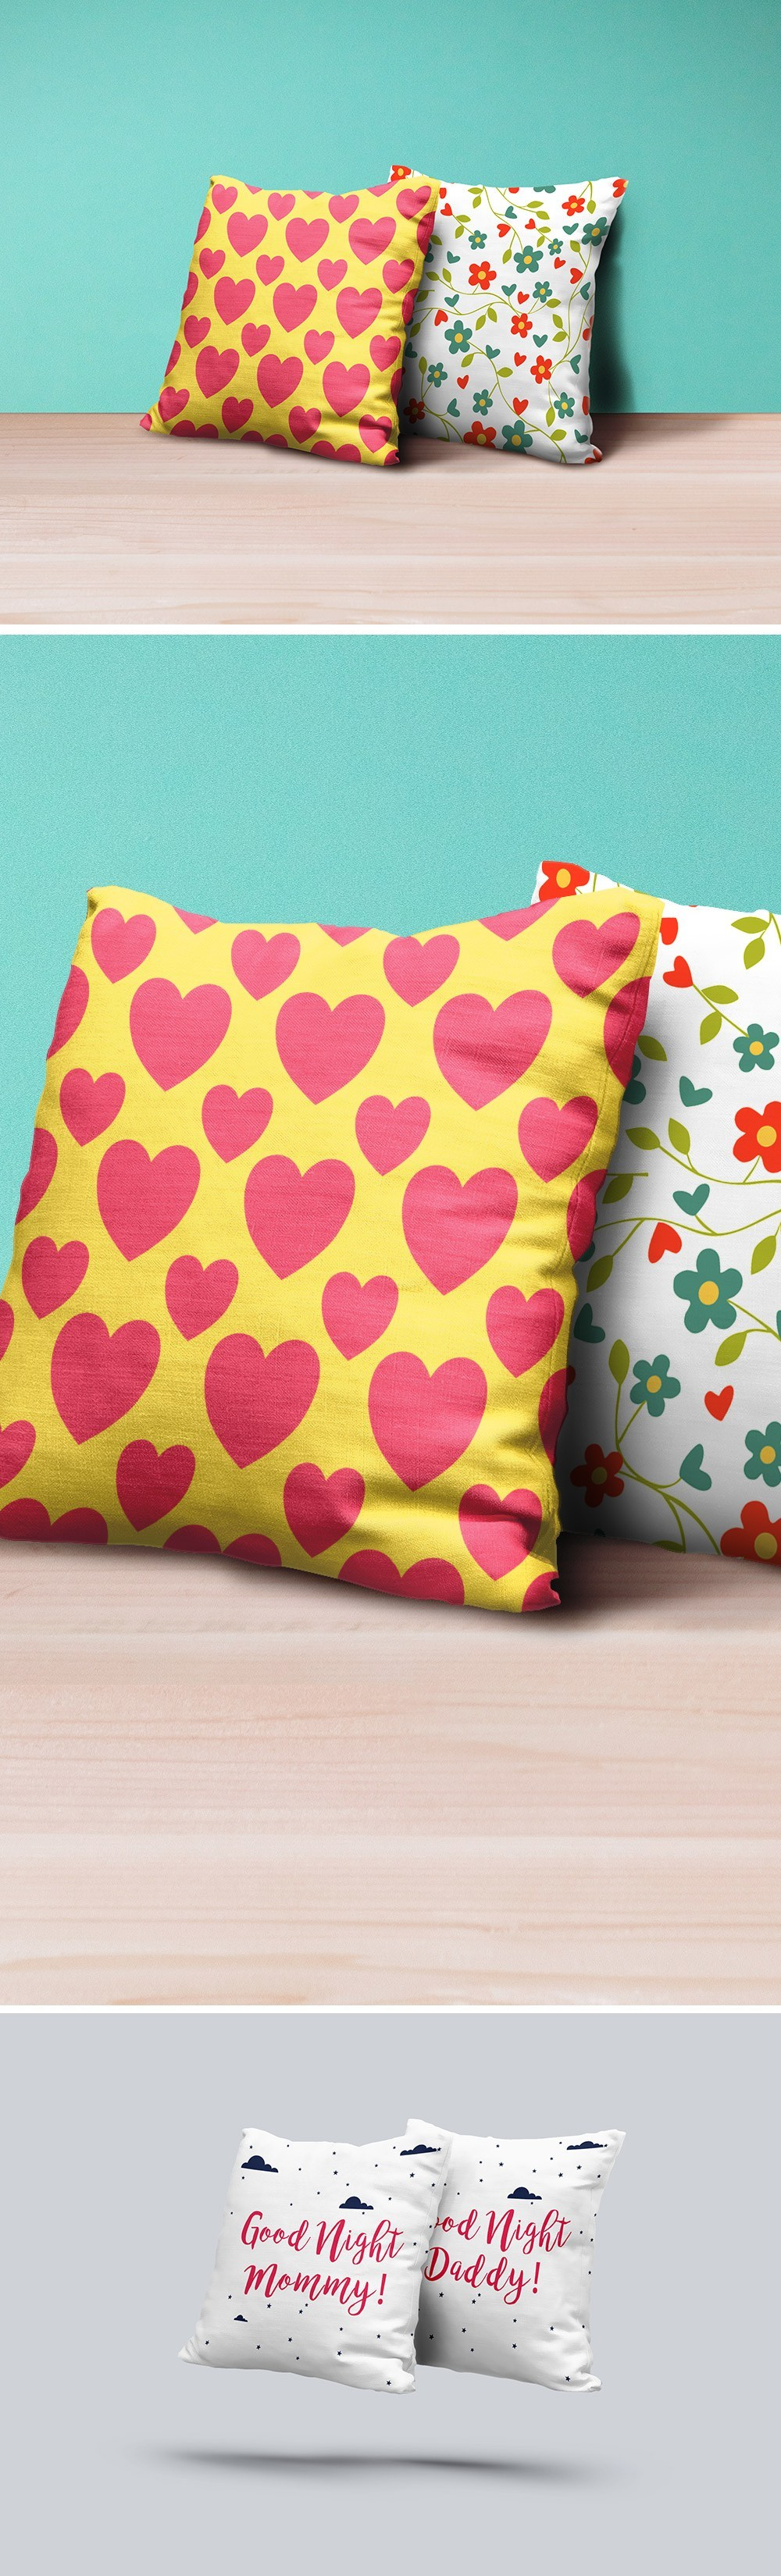 Pillows Mockup